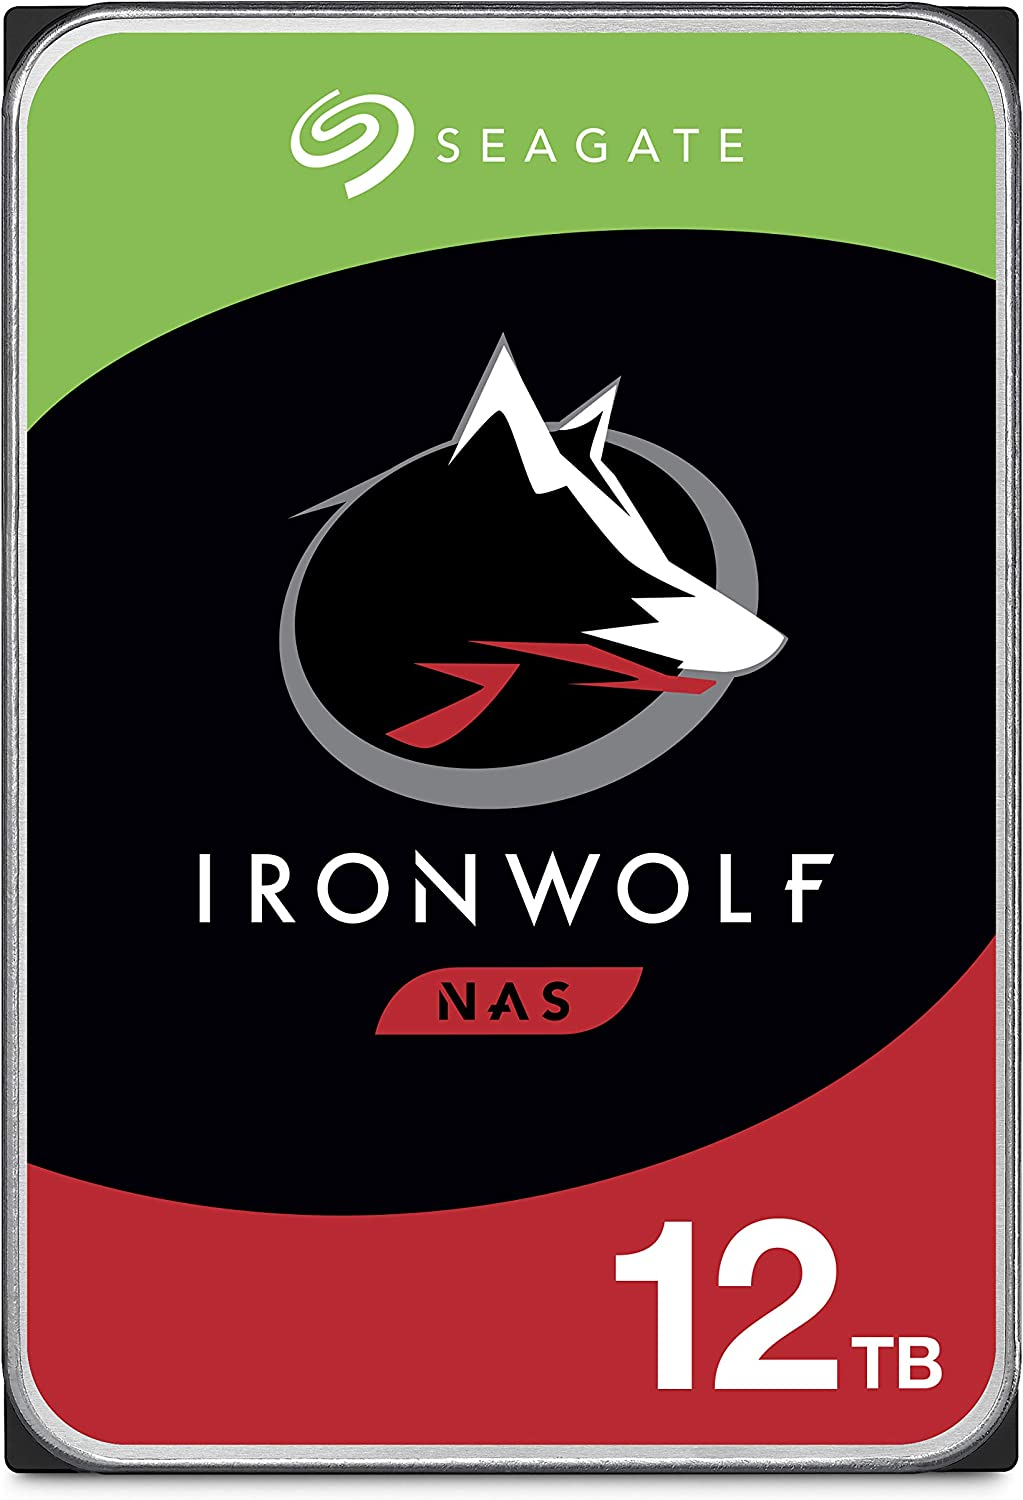 Seagate IronWolf 12TB NAS Internal Hard Drive HDD – 3.5 Inch SATA 6Gb/s 7200 RPM 256MB Cache for RAID Network Attached Storage – Frustration Free Packaging (ST12000VN0008)